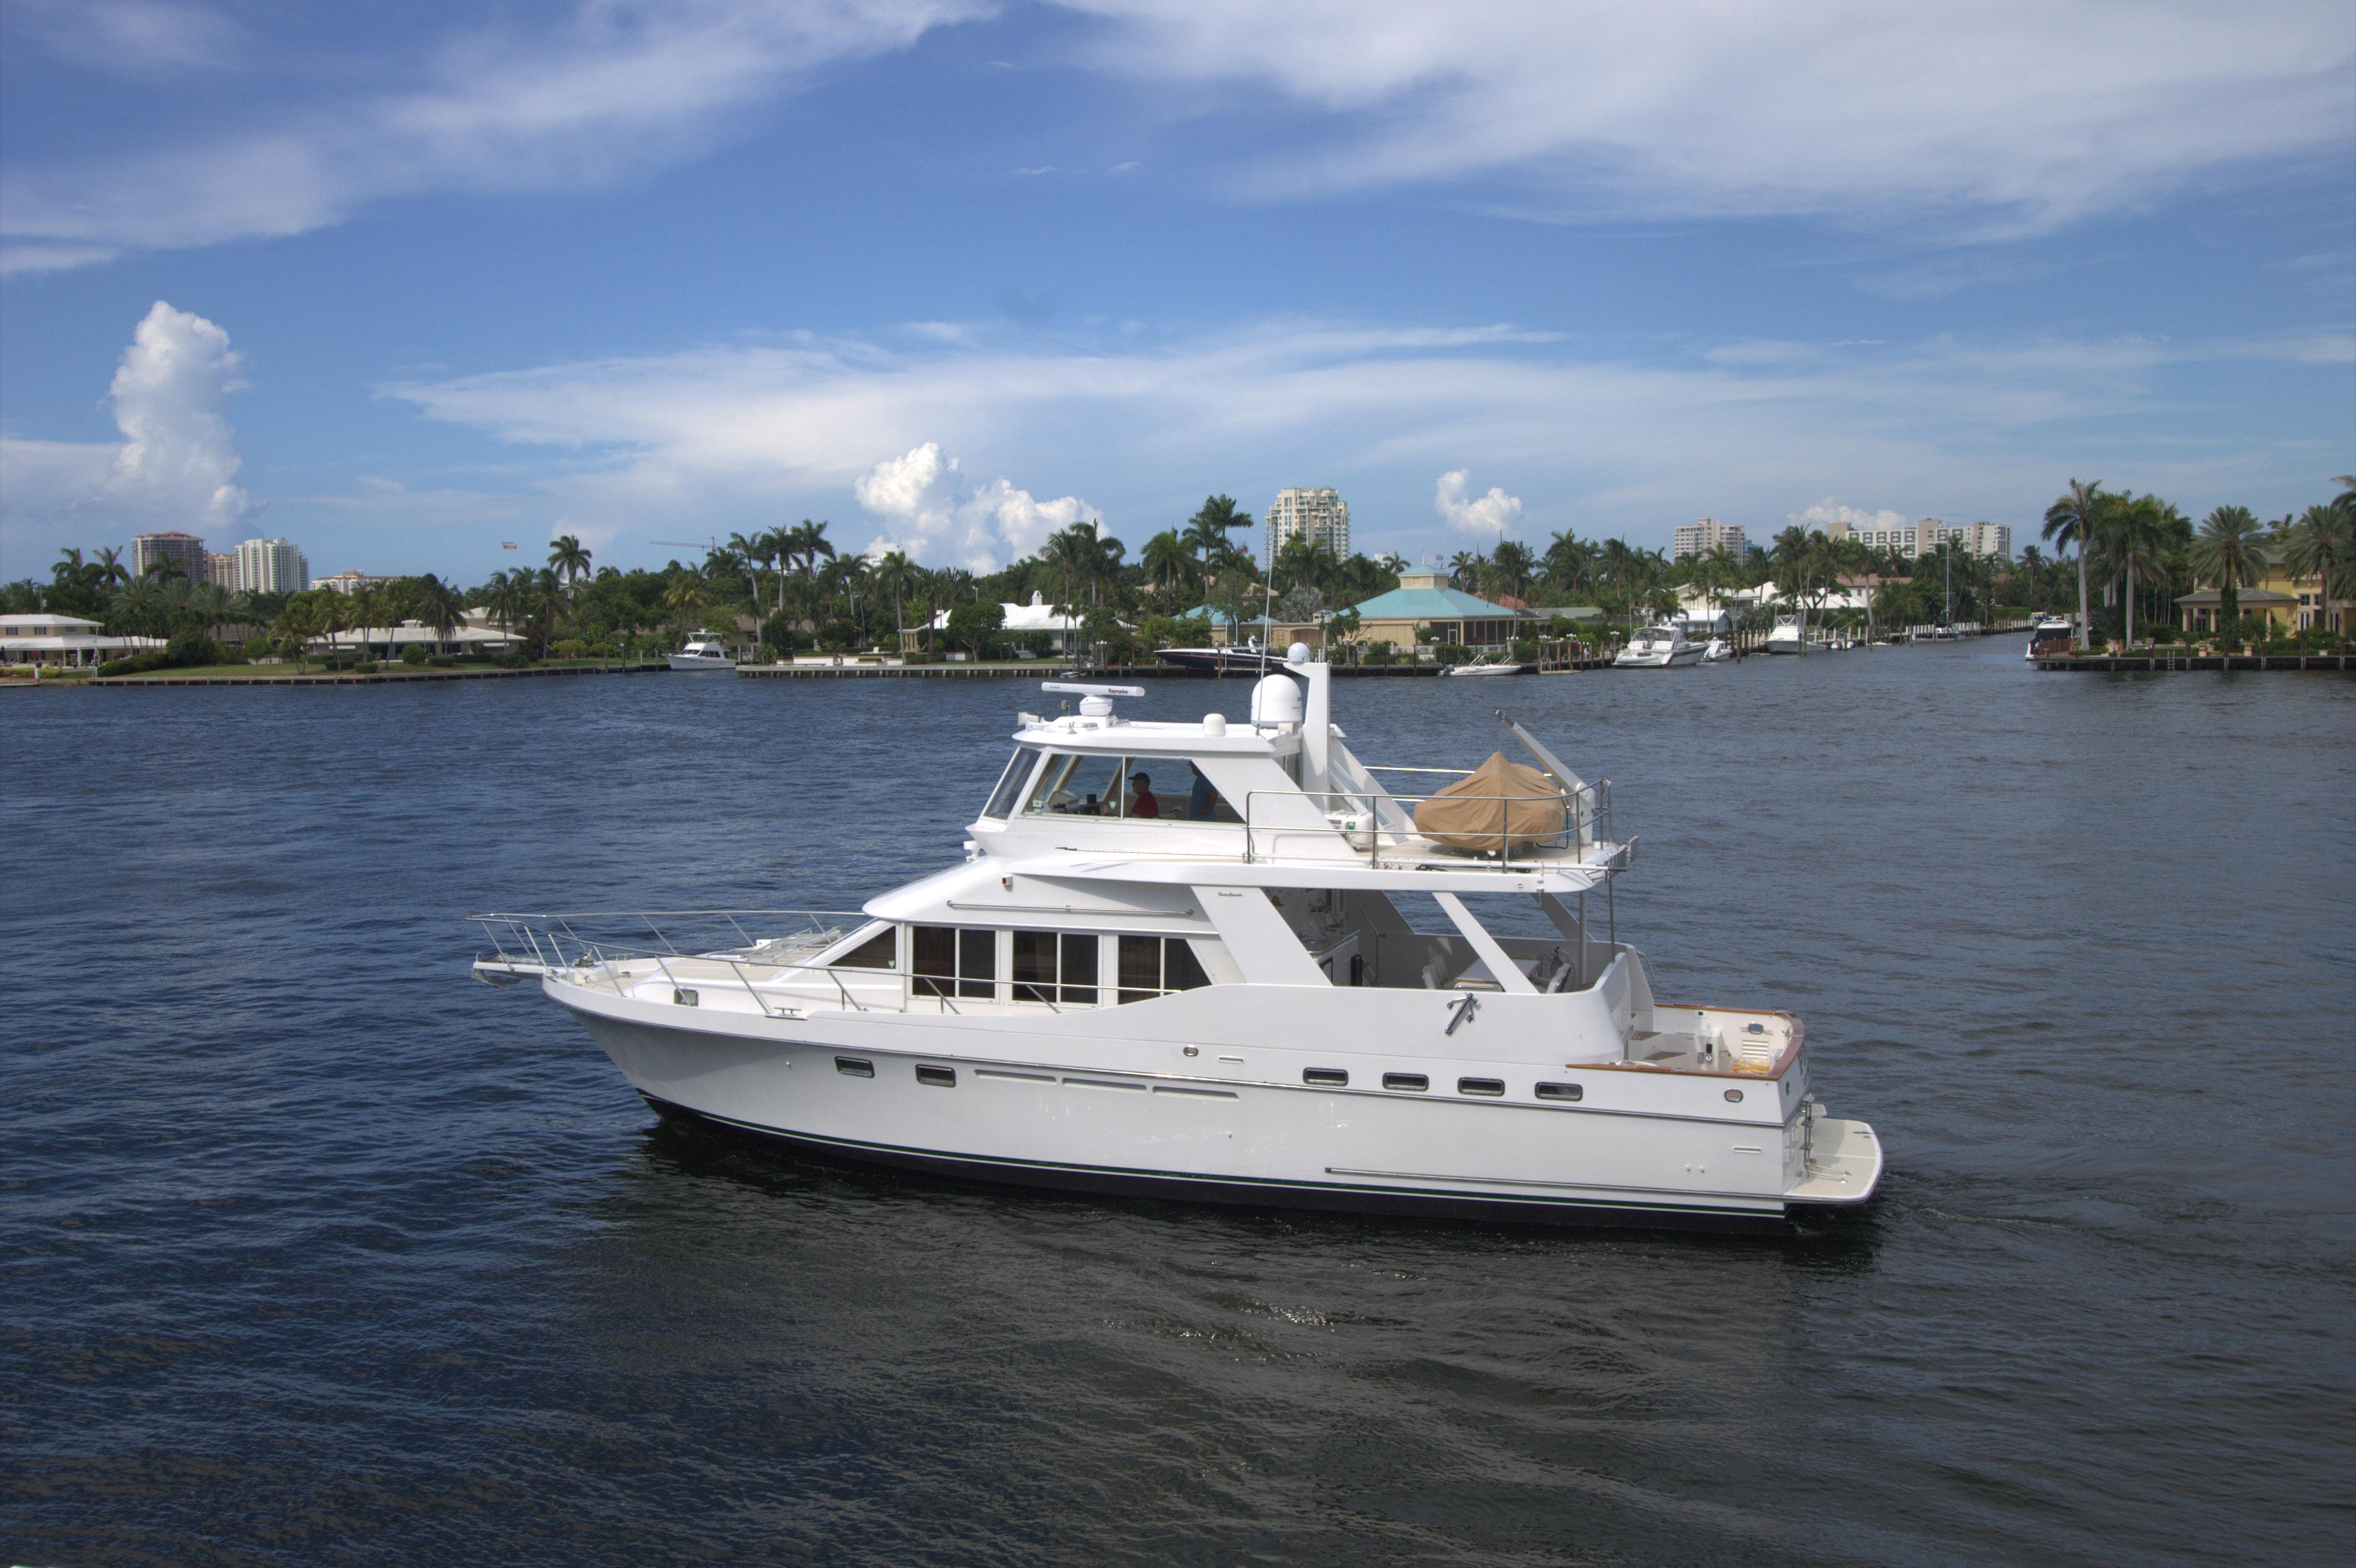 54 ocean alexander 1998 pdq for sale in fort lauderdale for Ocean yachts 48 motor yacht for sale